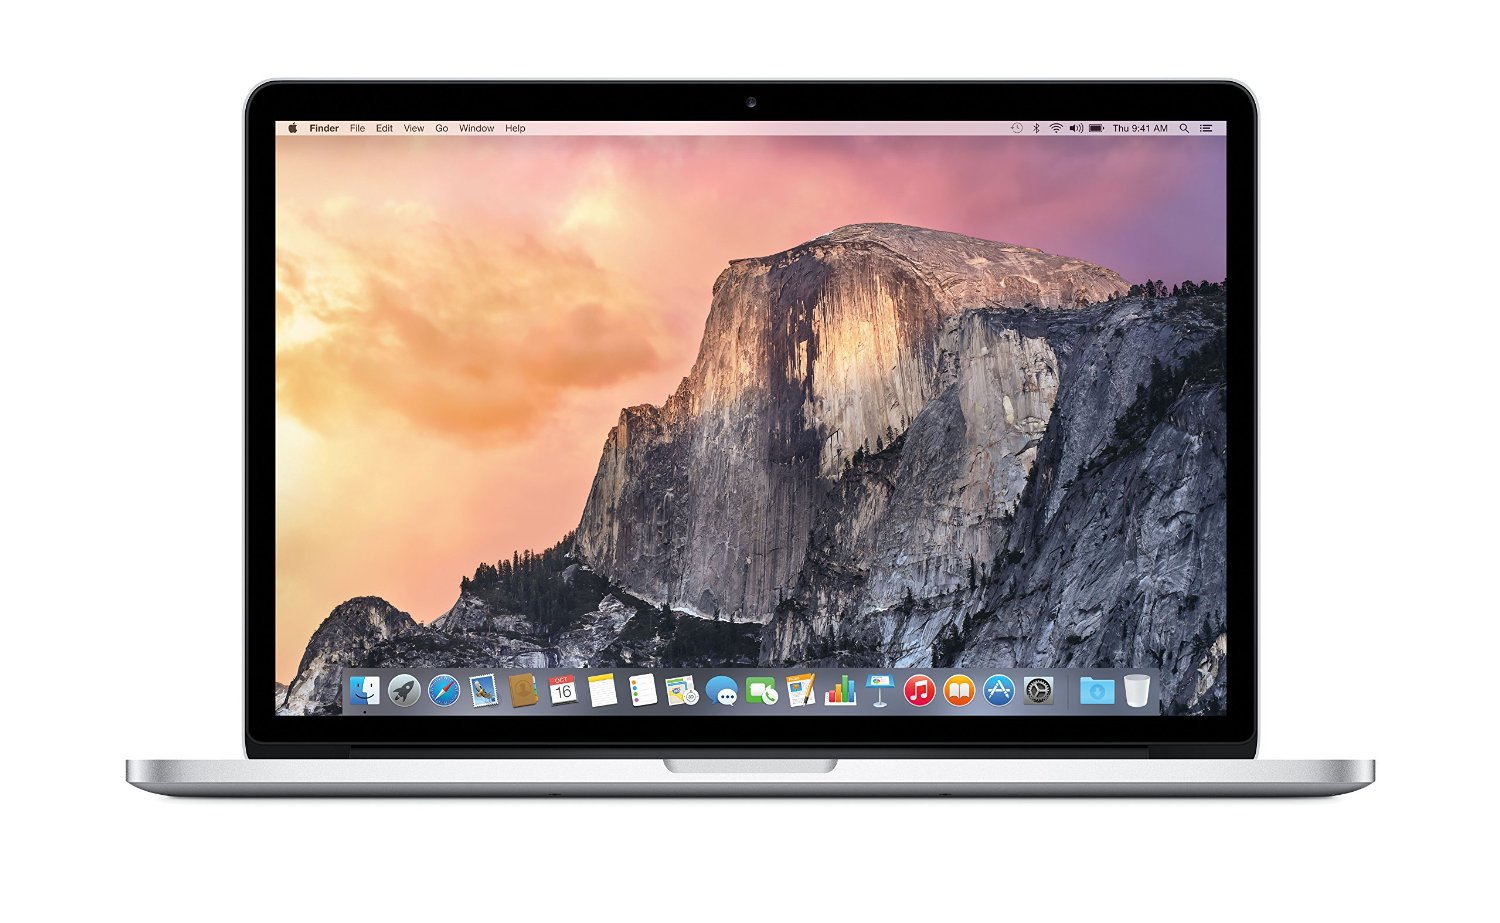 b33f7300567 Details about Apple Macbook Pro Z0UK0004P 13